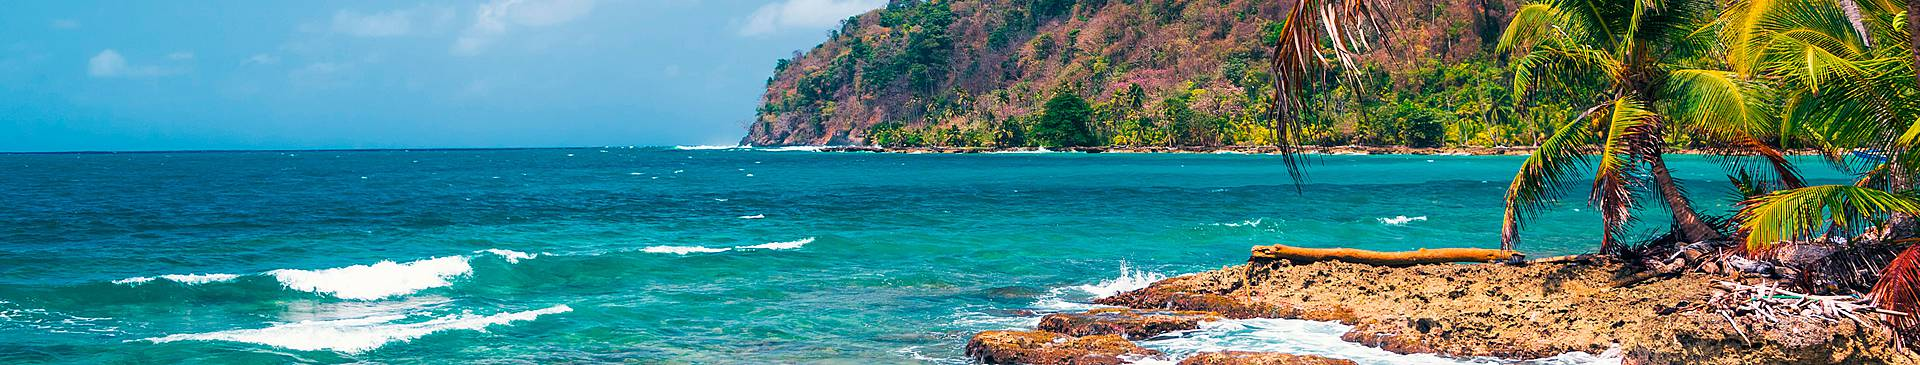 Beaches in Panama